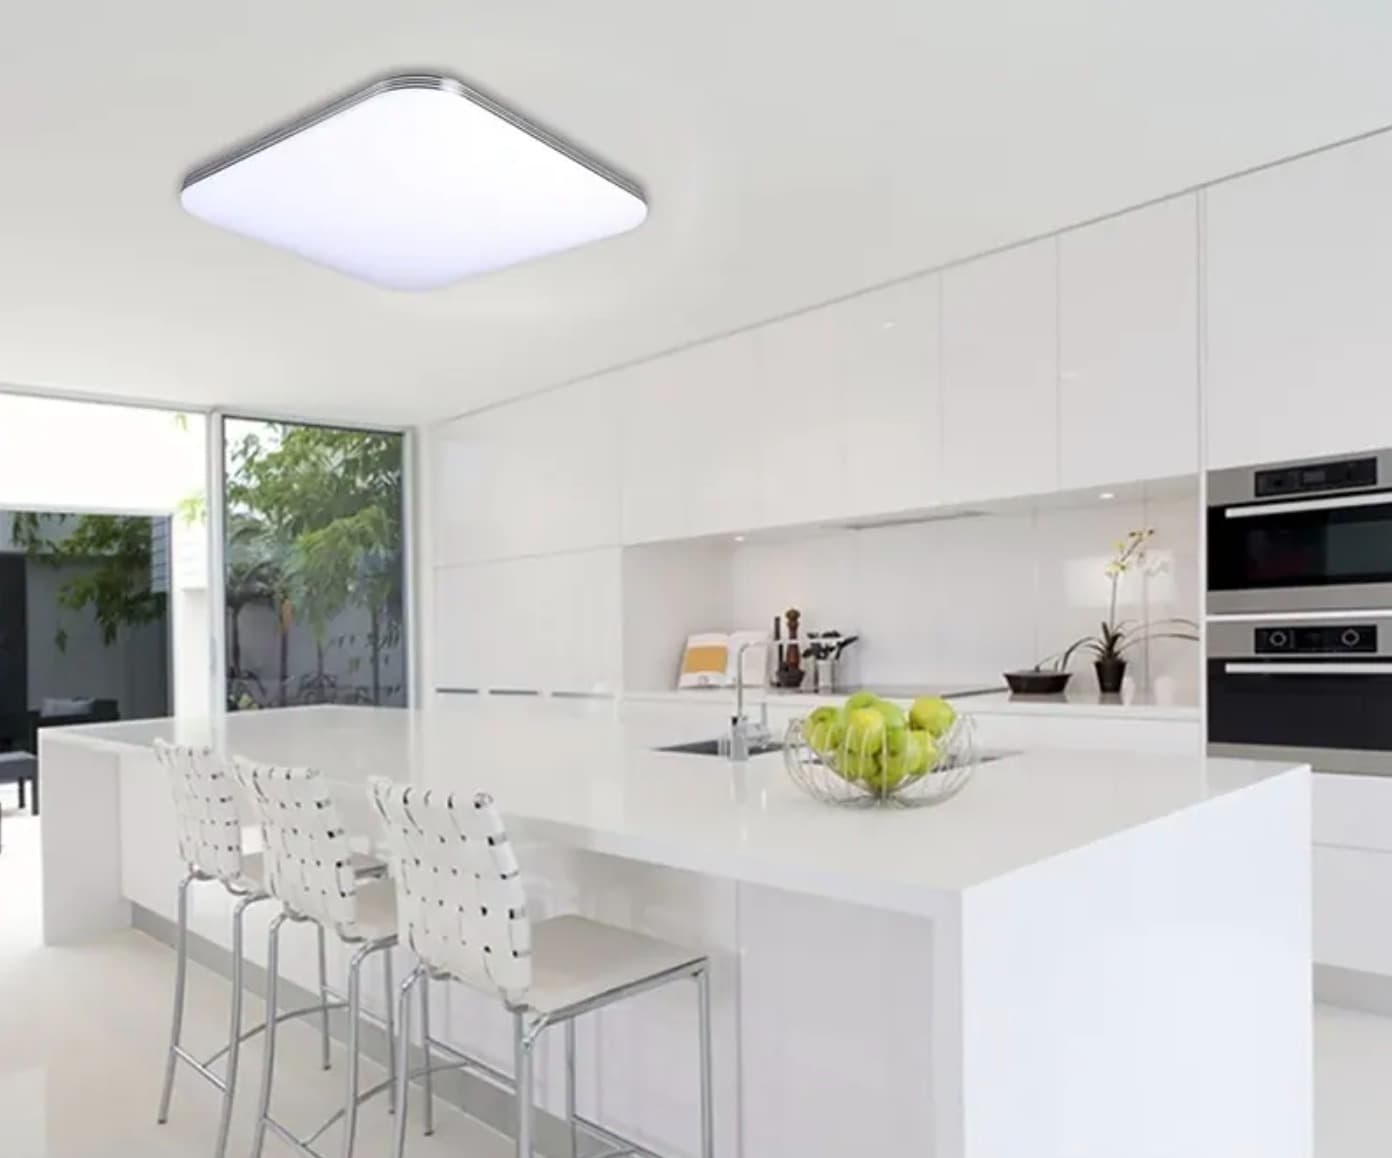 Simple Daylight Ceiling Panel